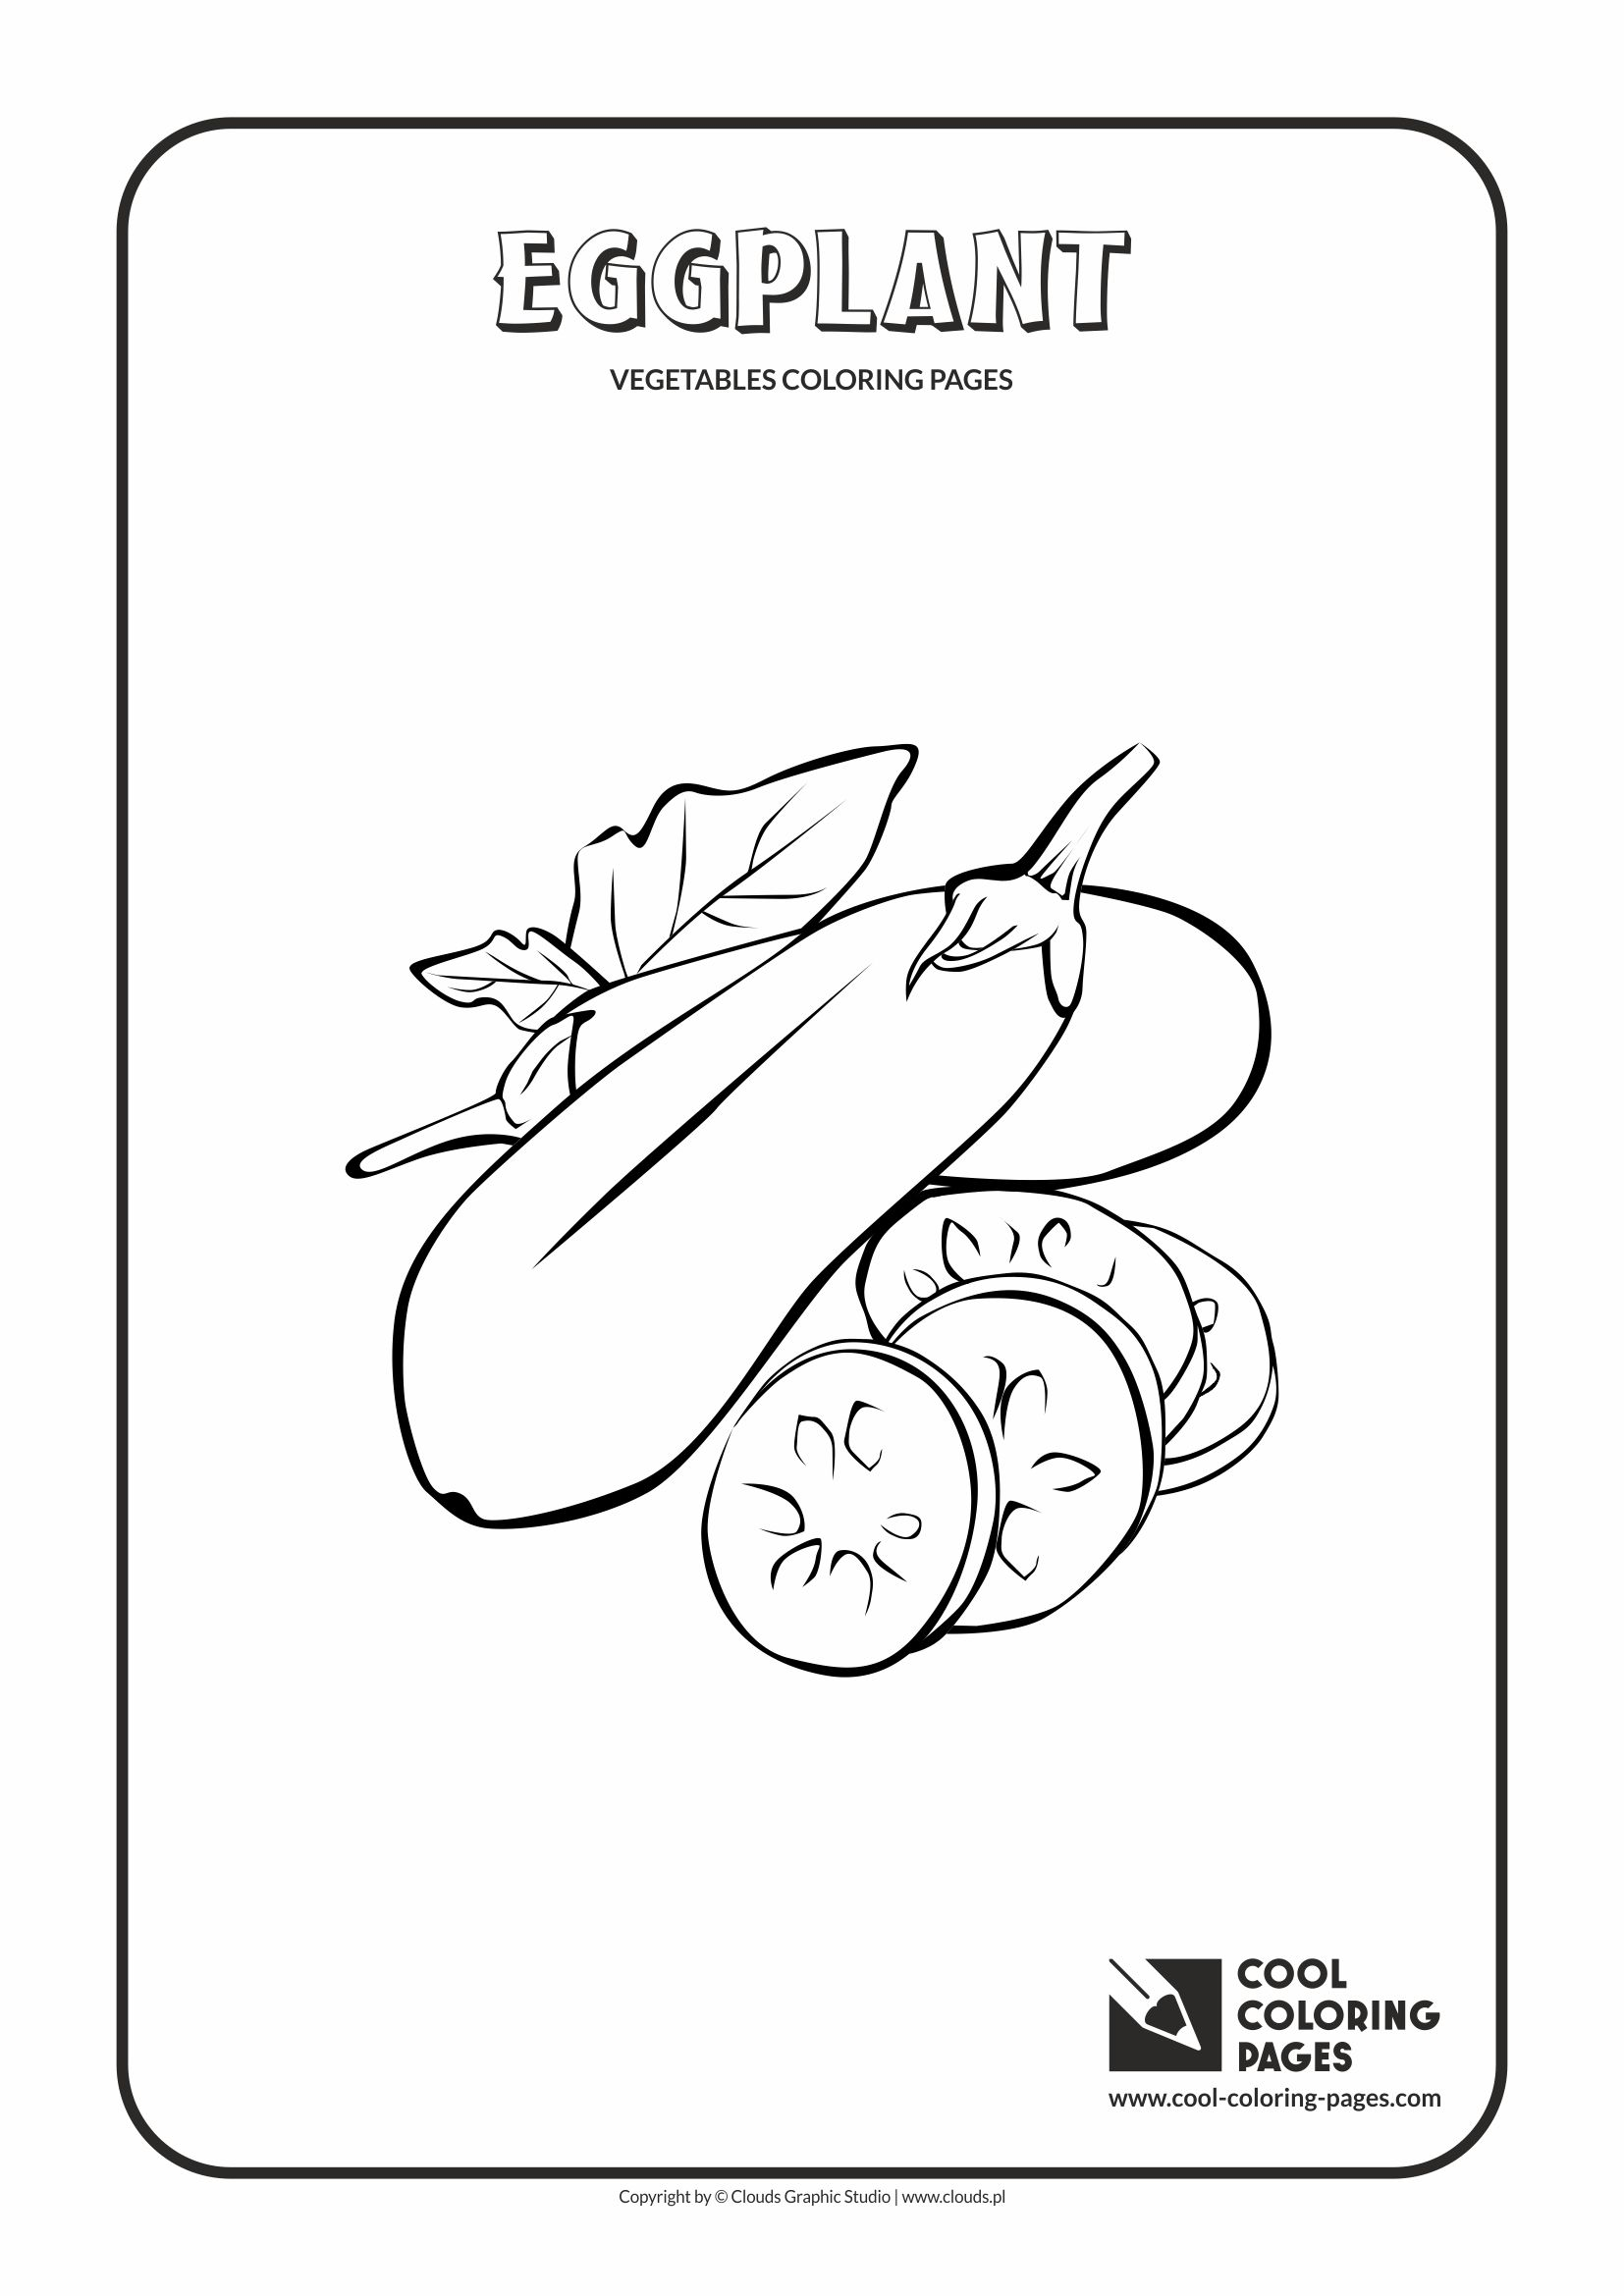 Cool Coloring Pages Vegetables coloring pages Cool Coloring Pages